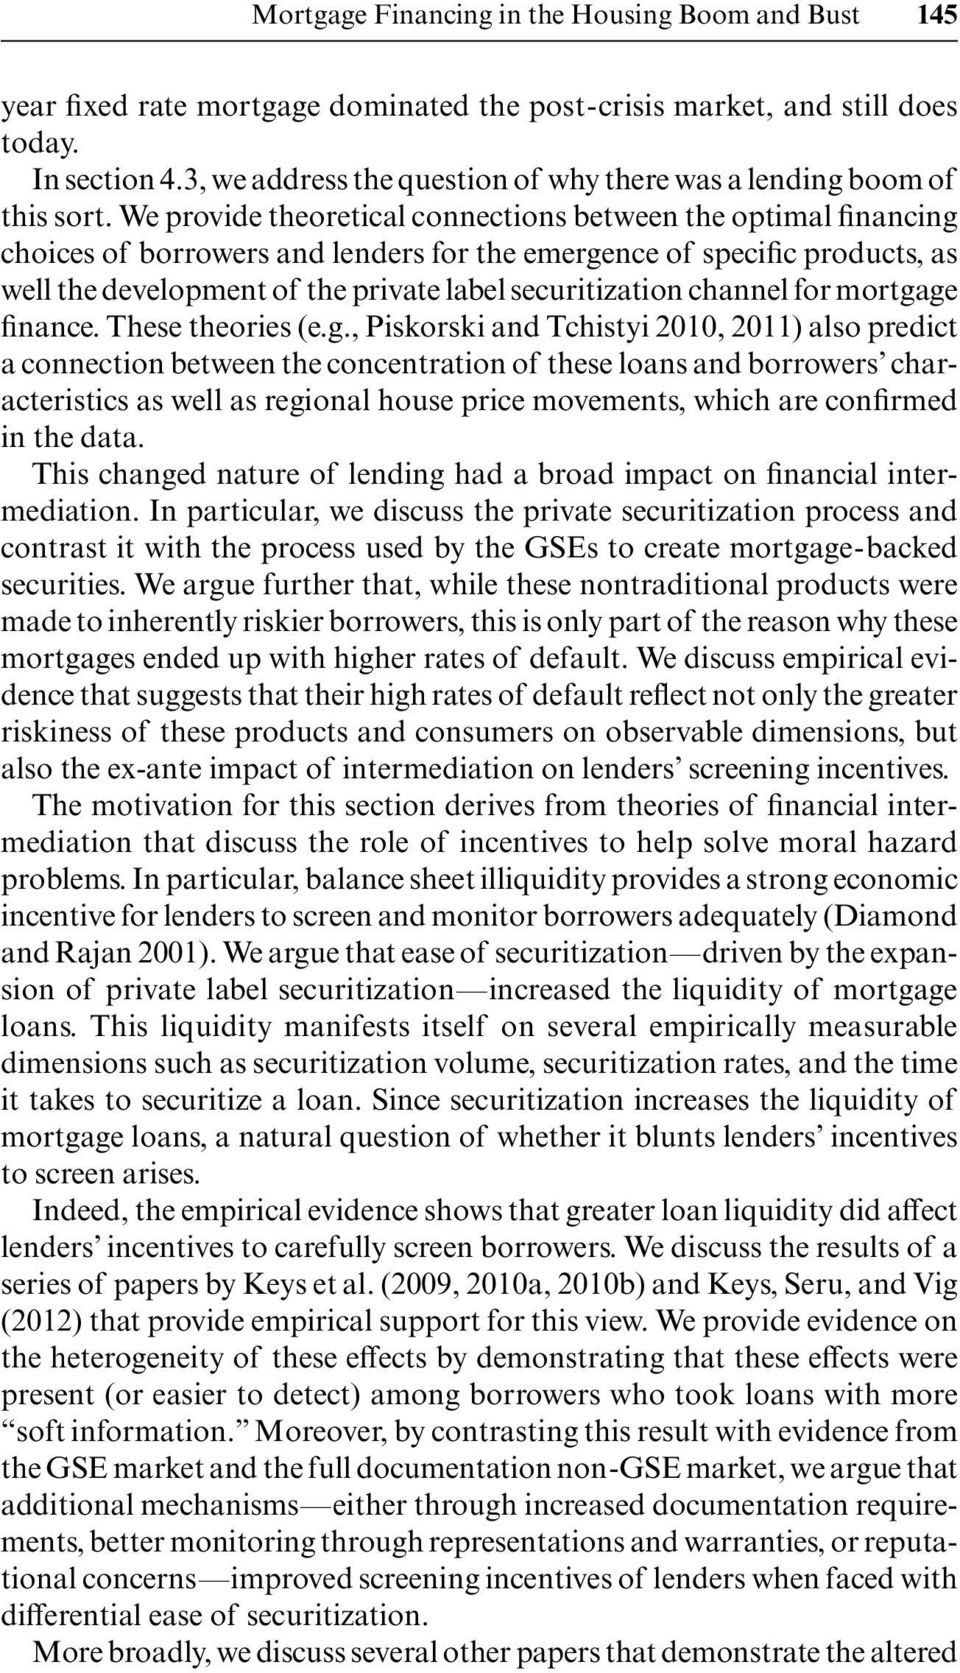 We provide theoretical connections between the optimal financing choices of borrowers and lenders for the emergence of specific products, as well the development of the private label securitization